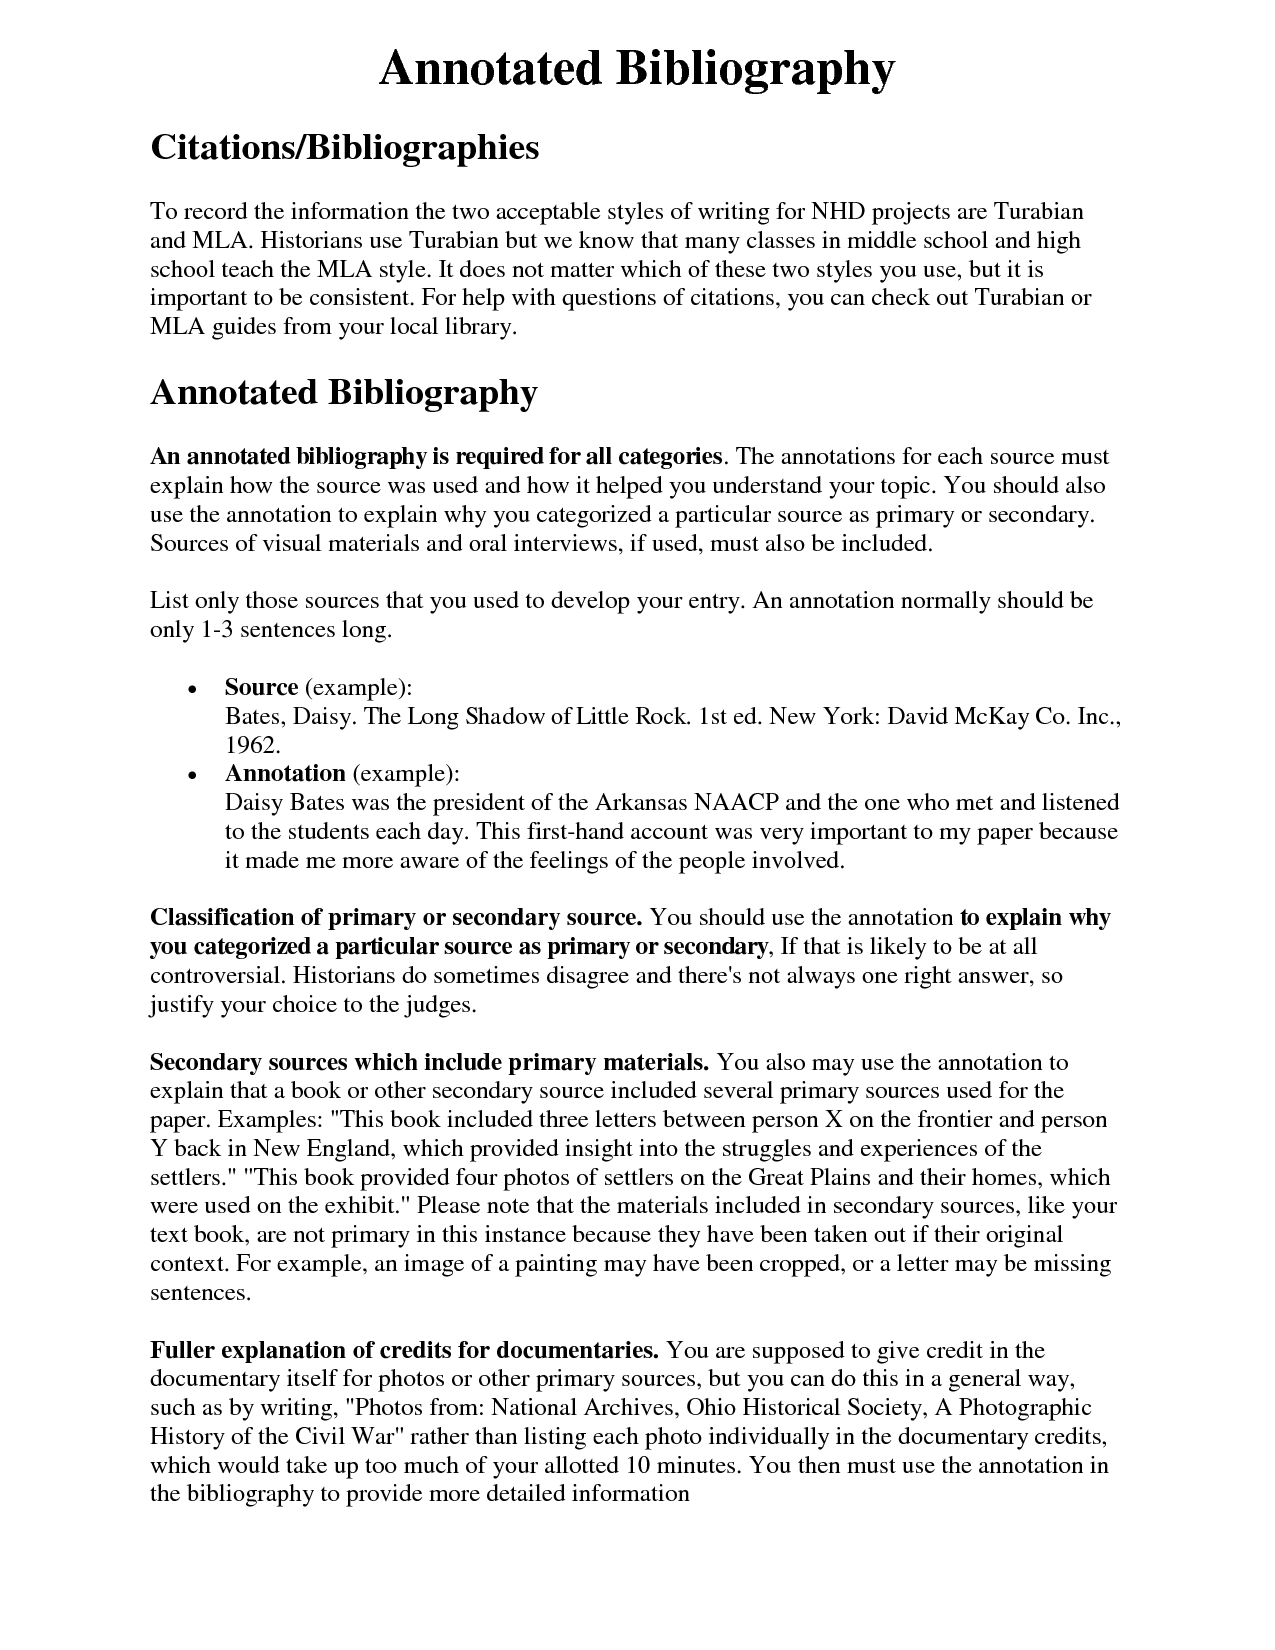 nhd annotated bibliography rubric